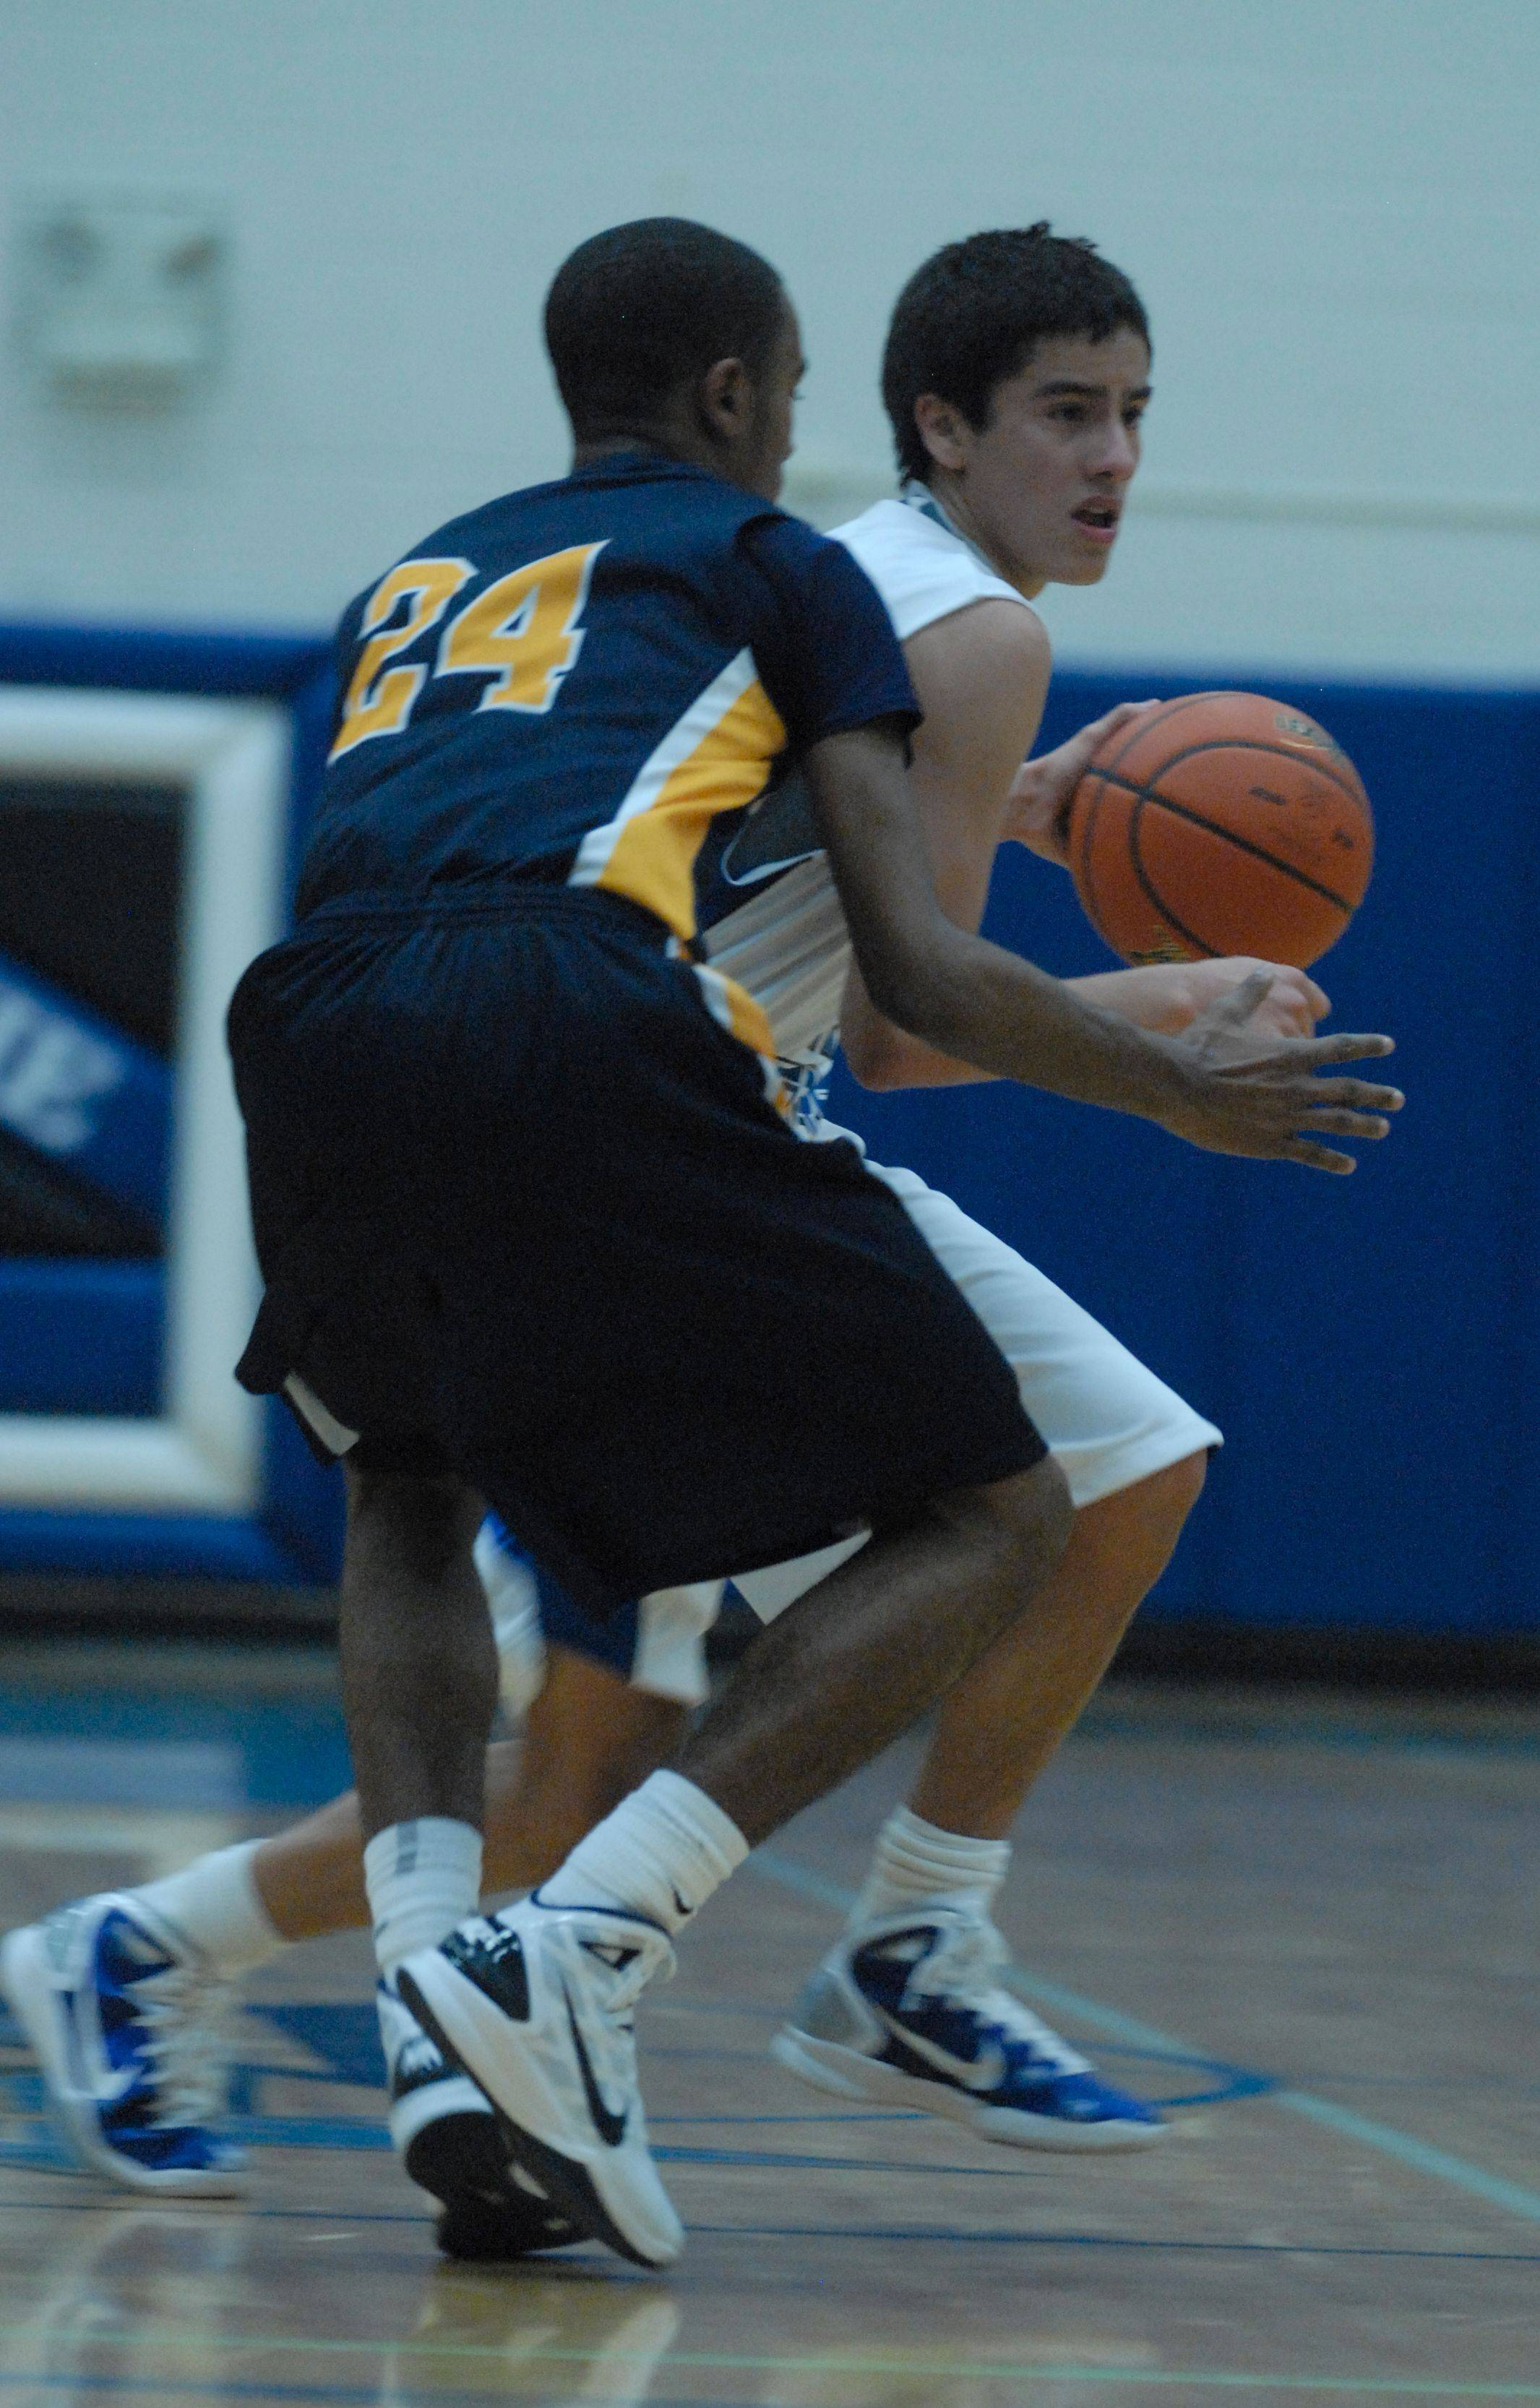 Images from the Neuqua Valley vs. St. Charles North boys basketball game Tuesday, December 14, 2010.